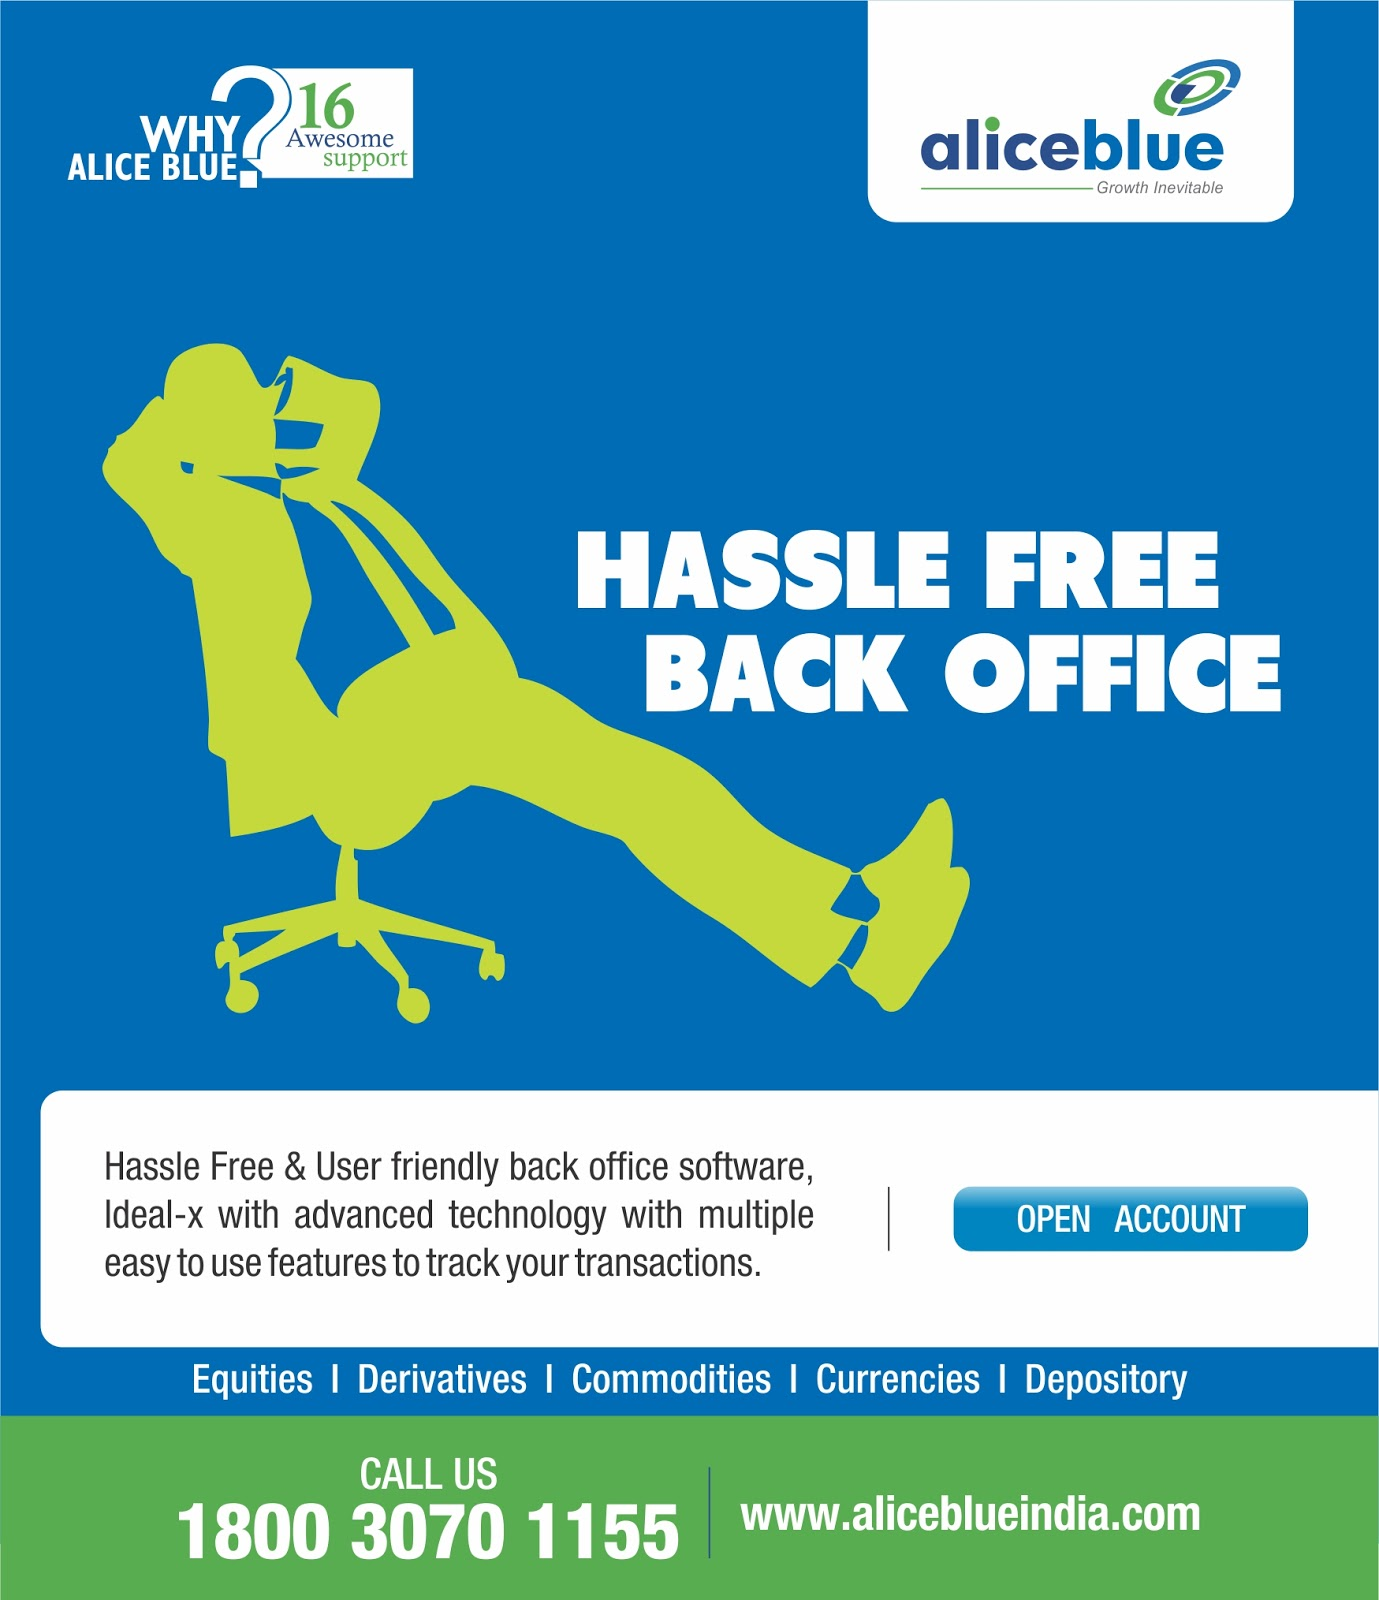 Alice Blue Hle Free Back Office Emailer By Digital Engagement